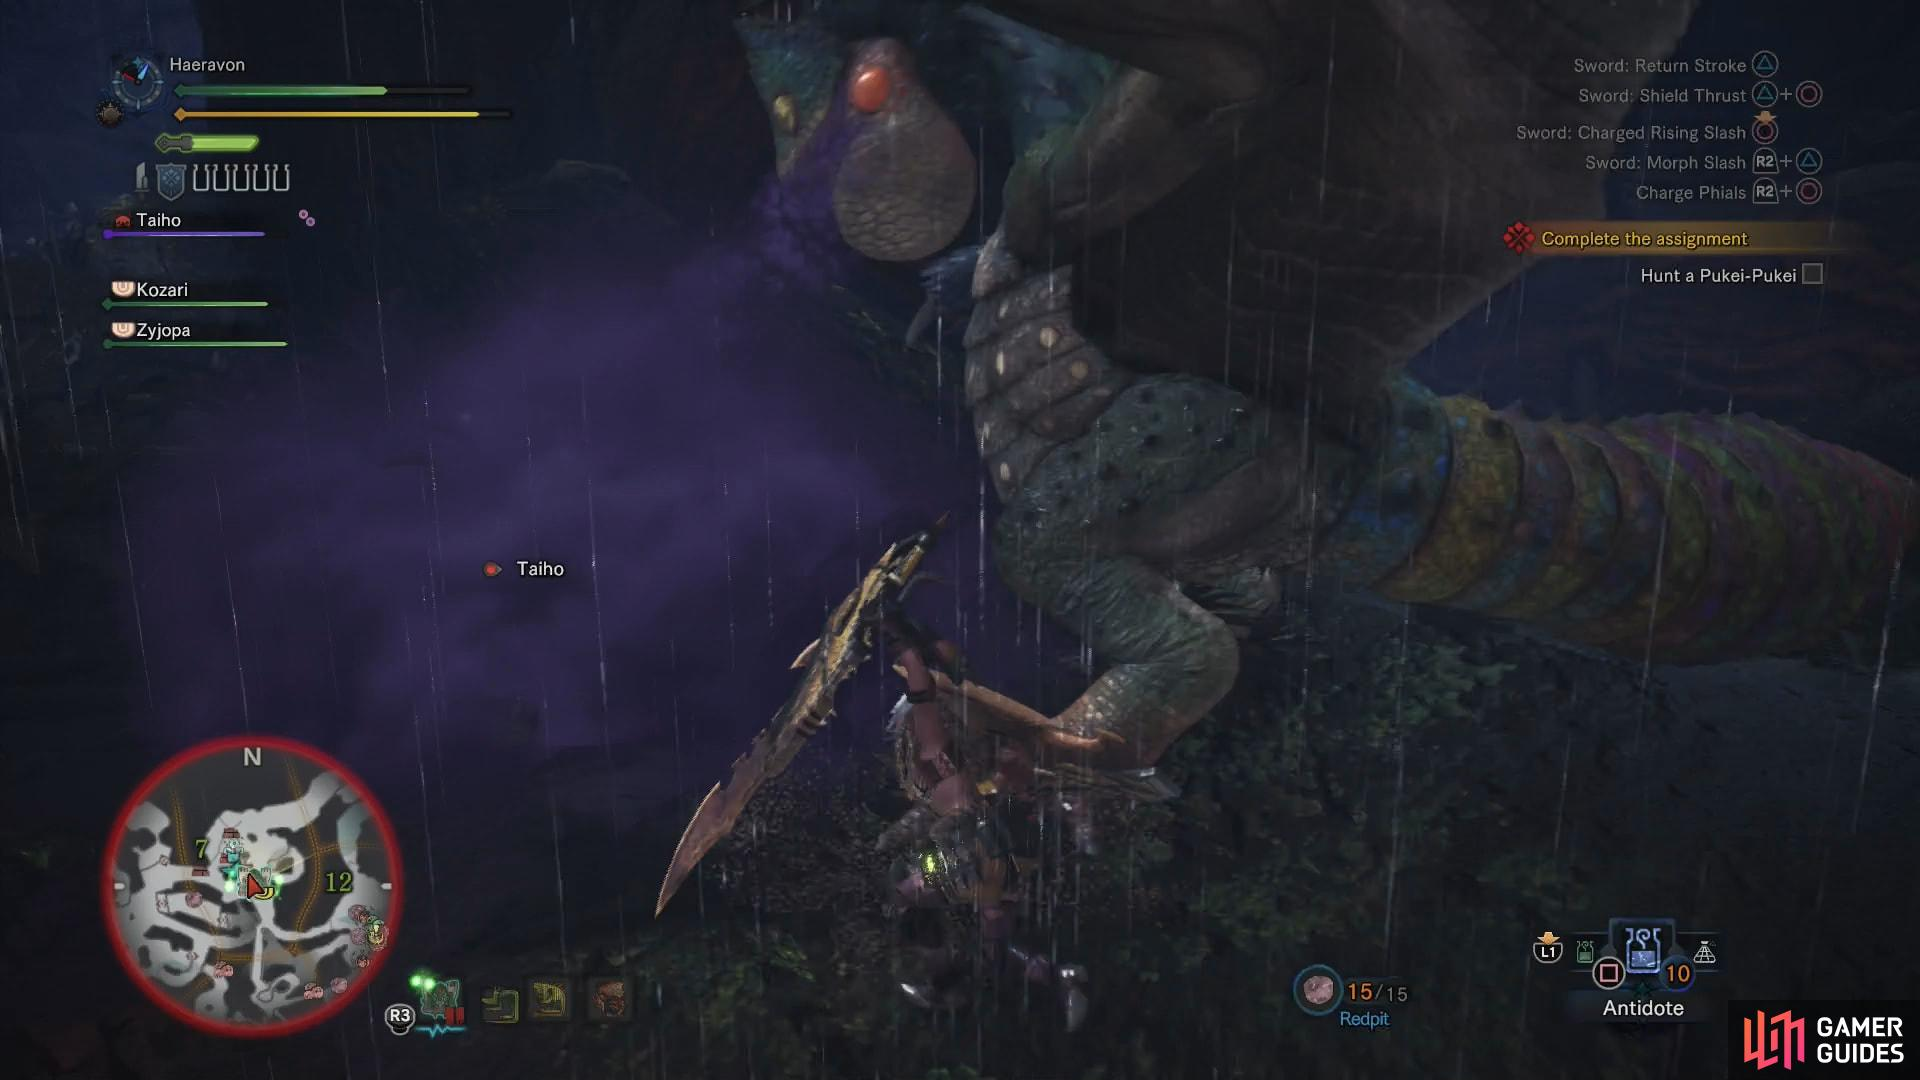 The Pukei-Pukei's most annoying attacks involve poison, including a poison gas breath attack